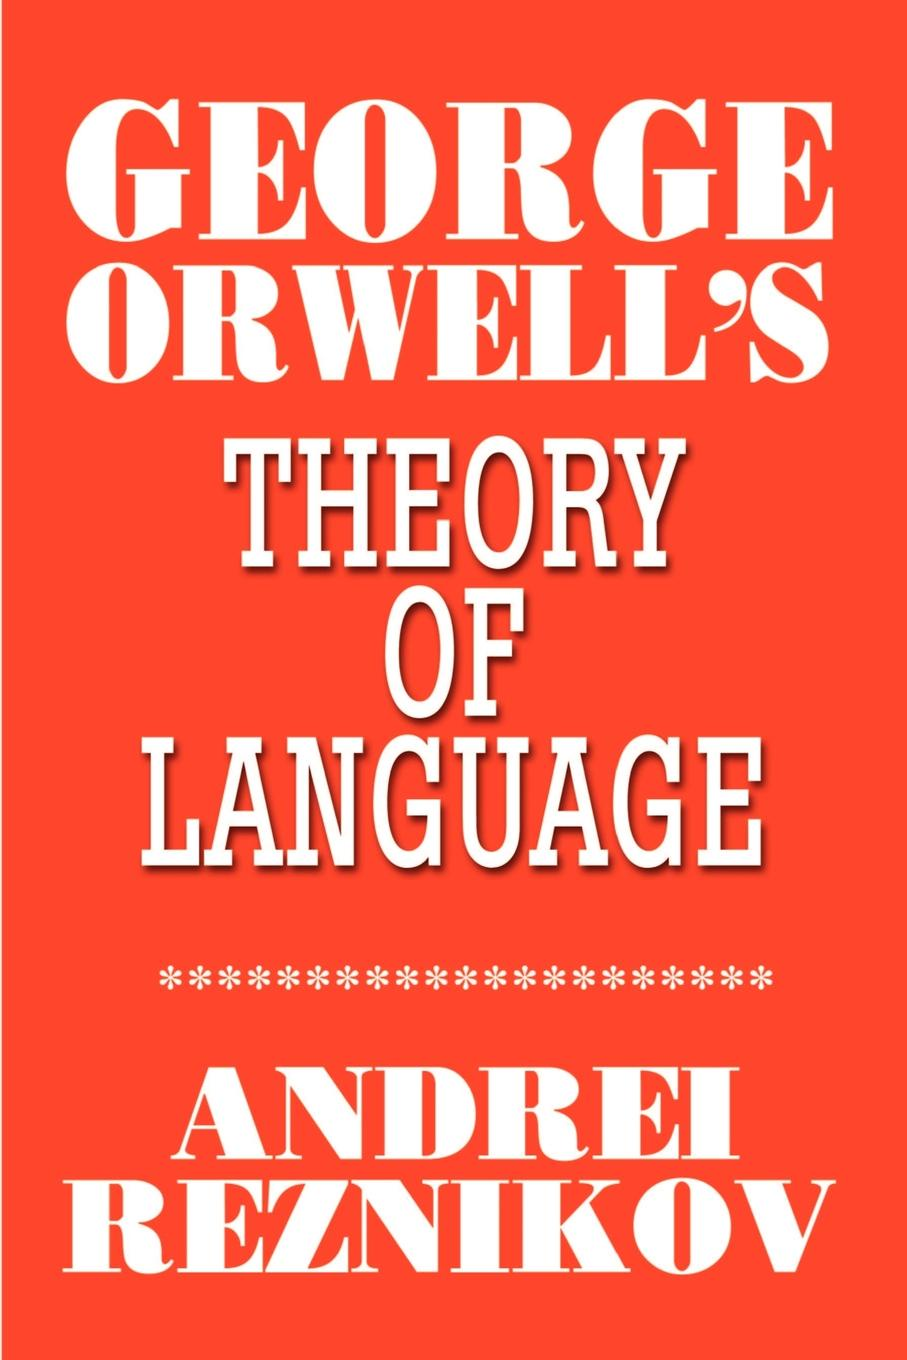 Andrei Reznikov George Orwell's Theory of Language printio фуnболка george orwell